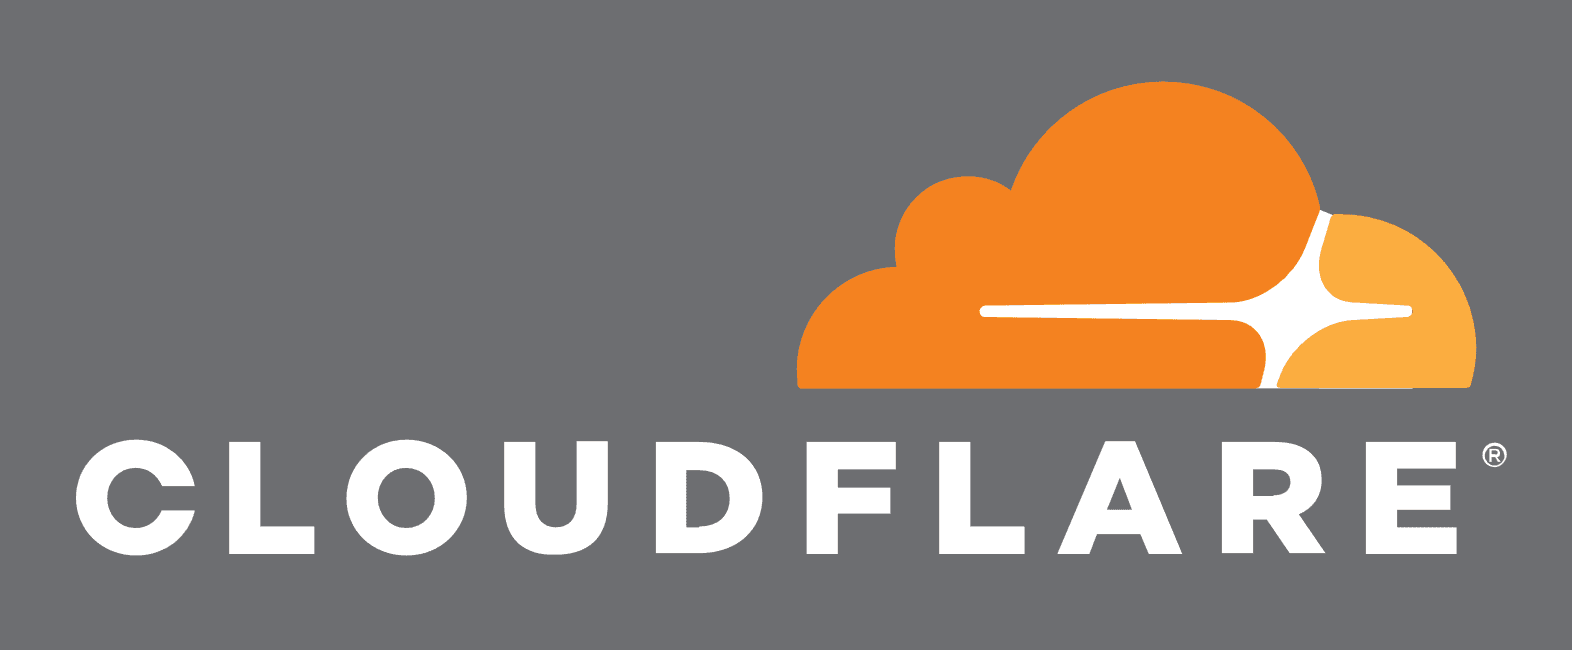 cloudflare torrent sites